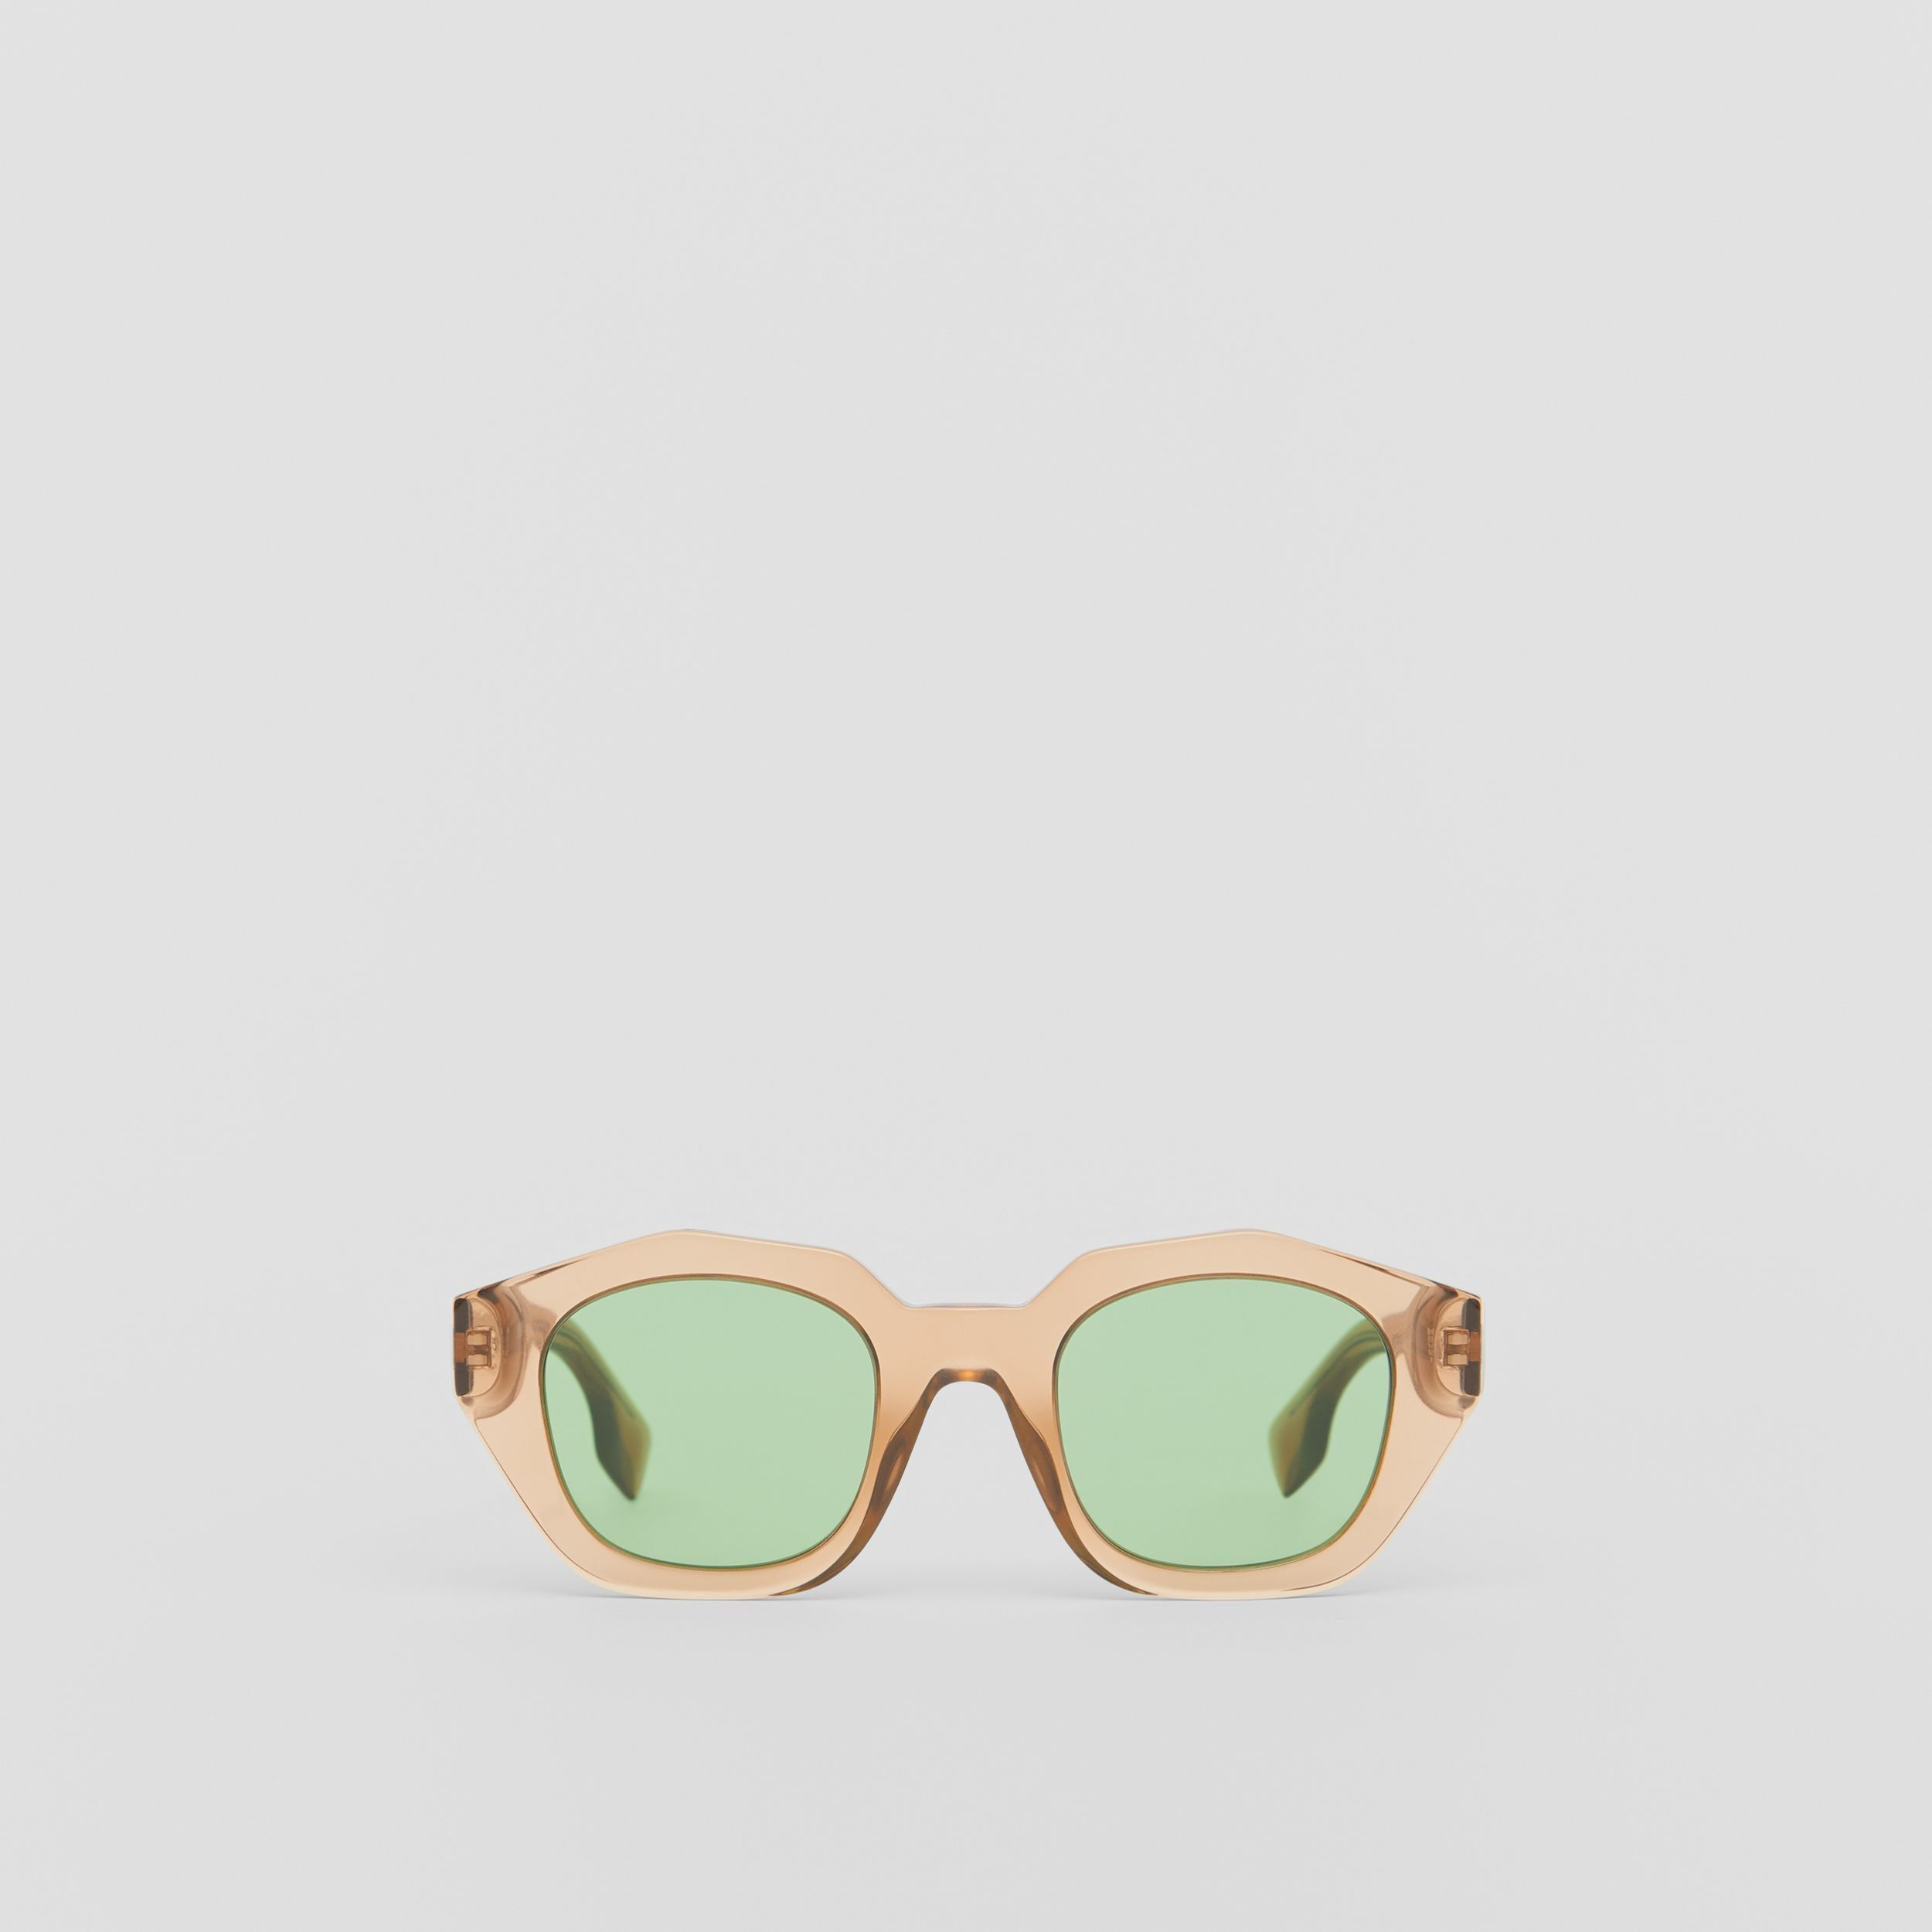 Geometric Frame Sunglasses in Brown - Women | Burberry United Kingdom - 1